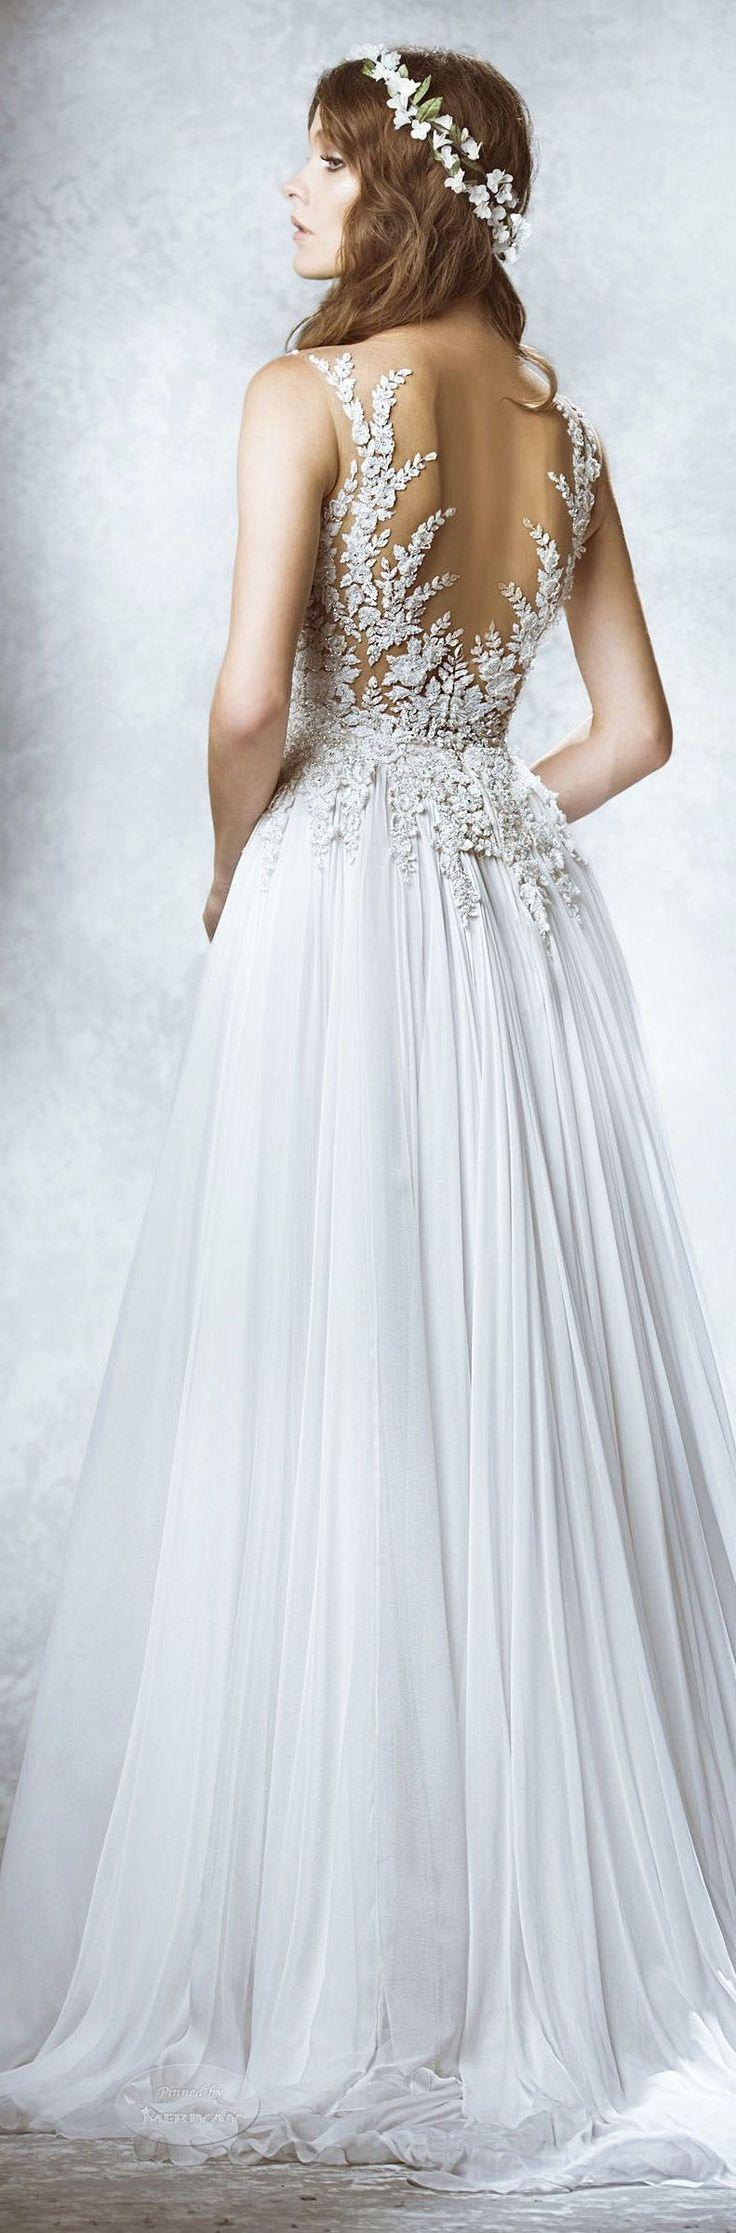 Mariage - Backless Wedding Dress